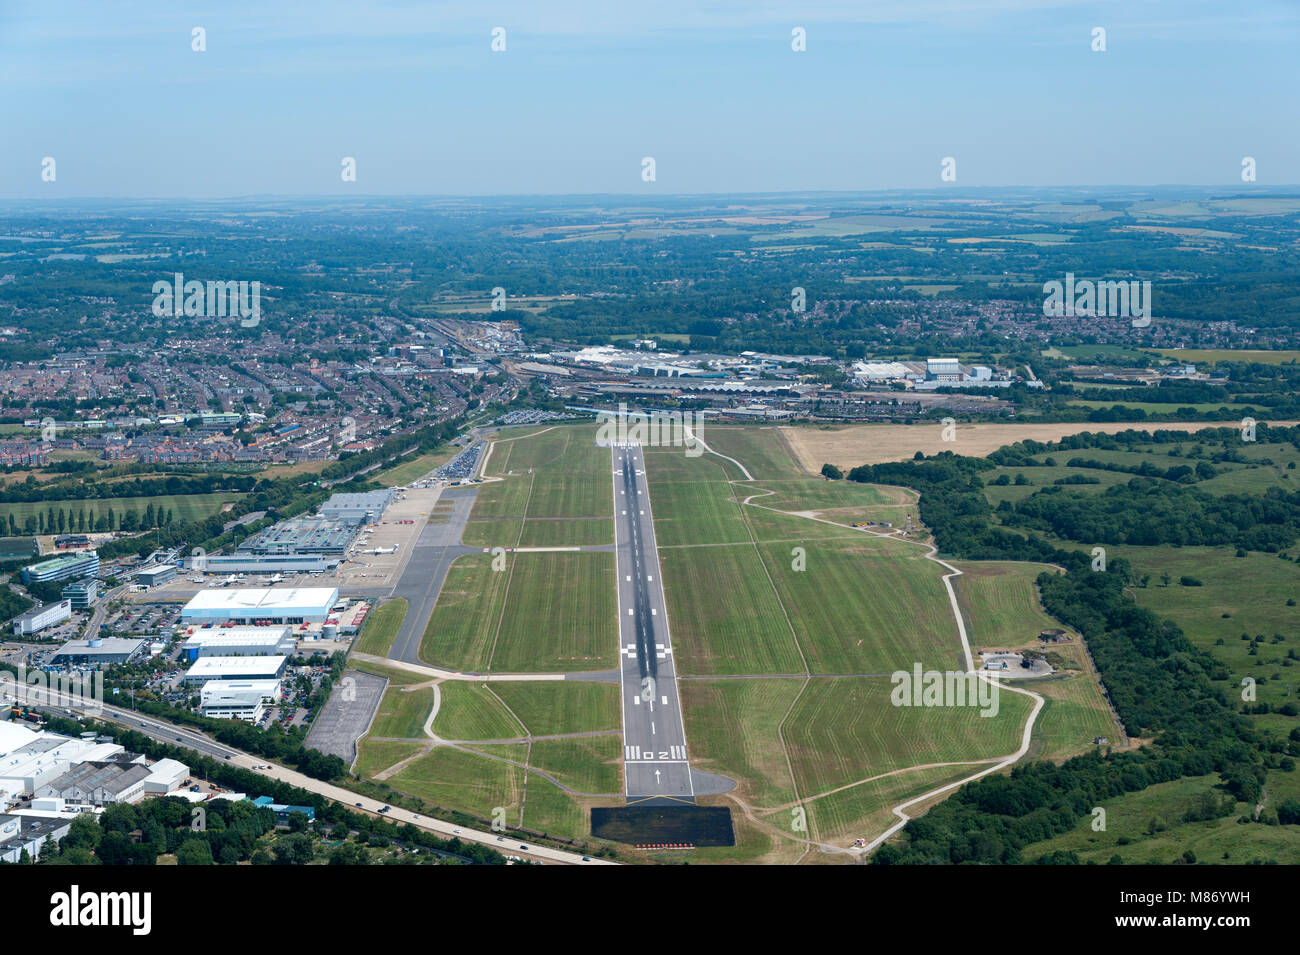 Southampton (Eastleigh) Airport from the air - Stock Image